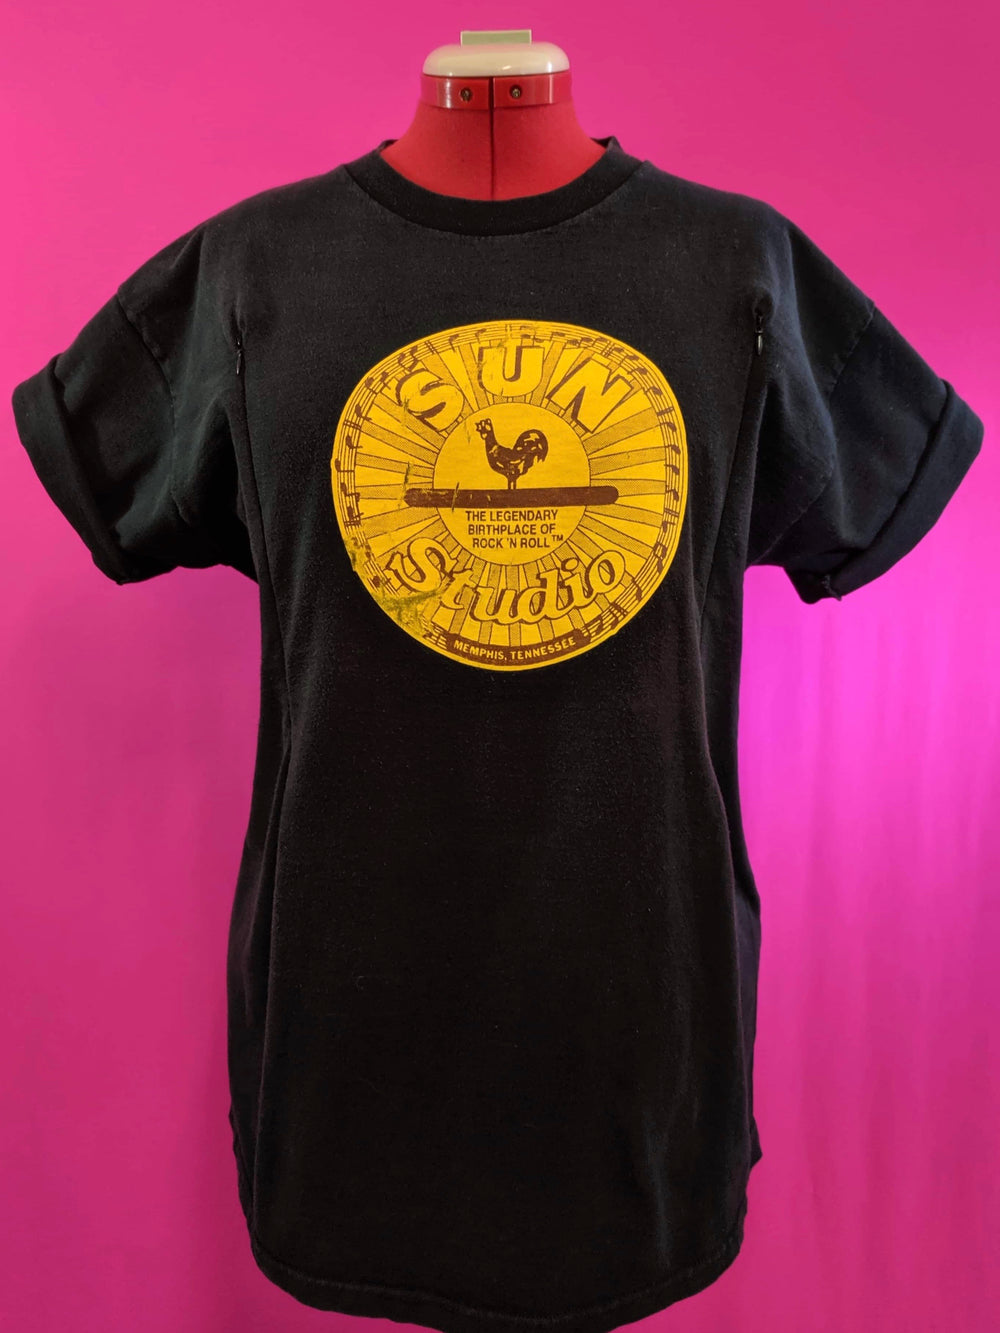 Sun Studios Breastfeeding Shirt (XL)